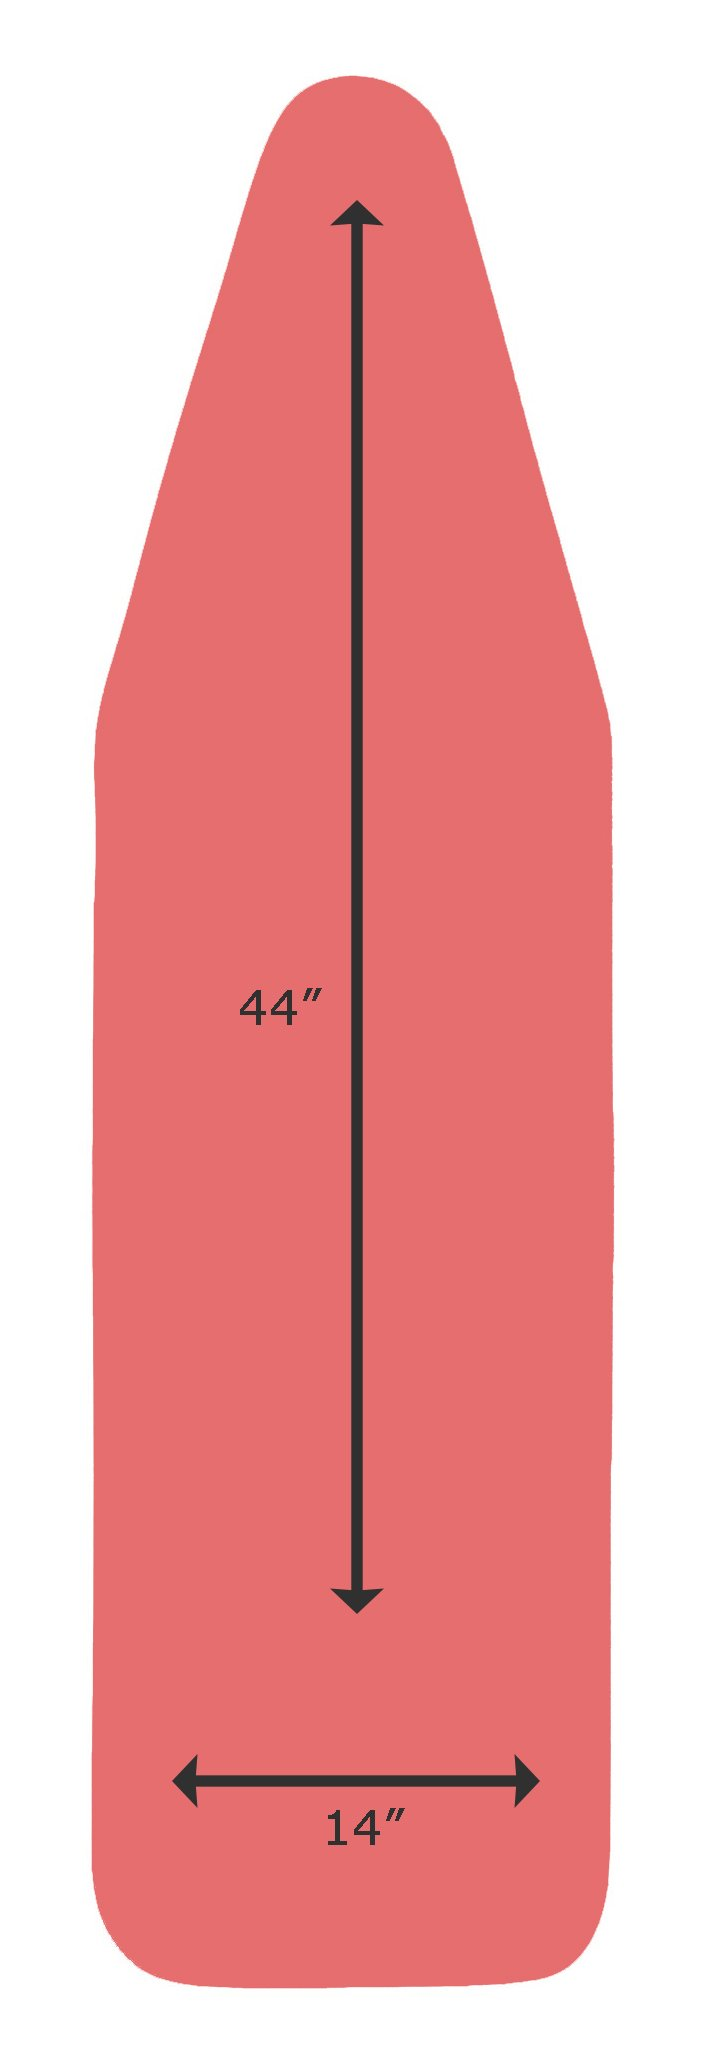 14 x 44 Inch CottonTek Pro - Heat-Reflective Advanced Cotton Technology - 5 Layer Padded Ironing Board Cover for ironing & steaming with FULL ALUMINUM LINING - Coral Red/PATENT PENDING